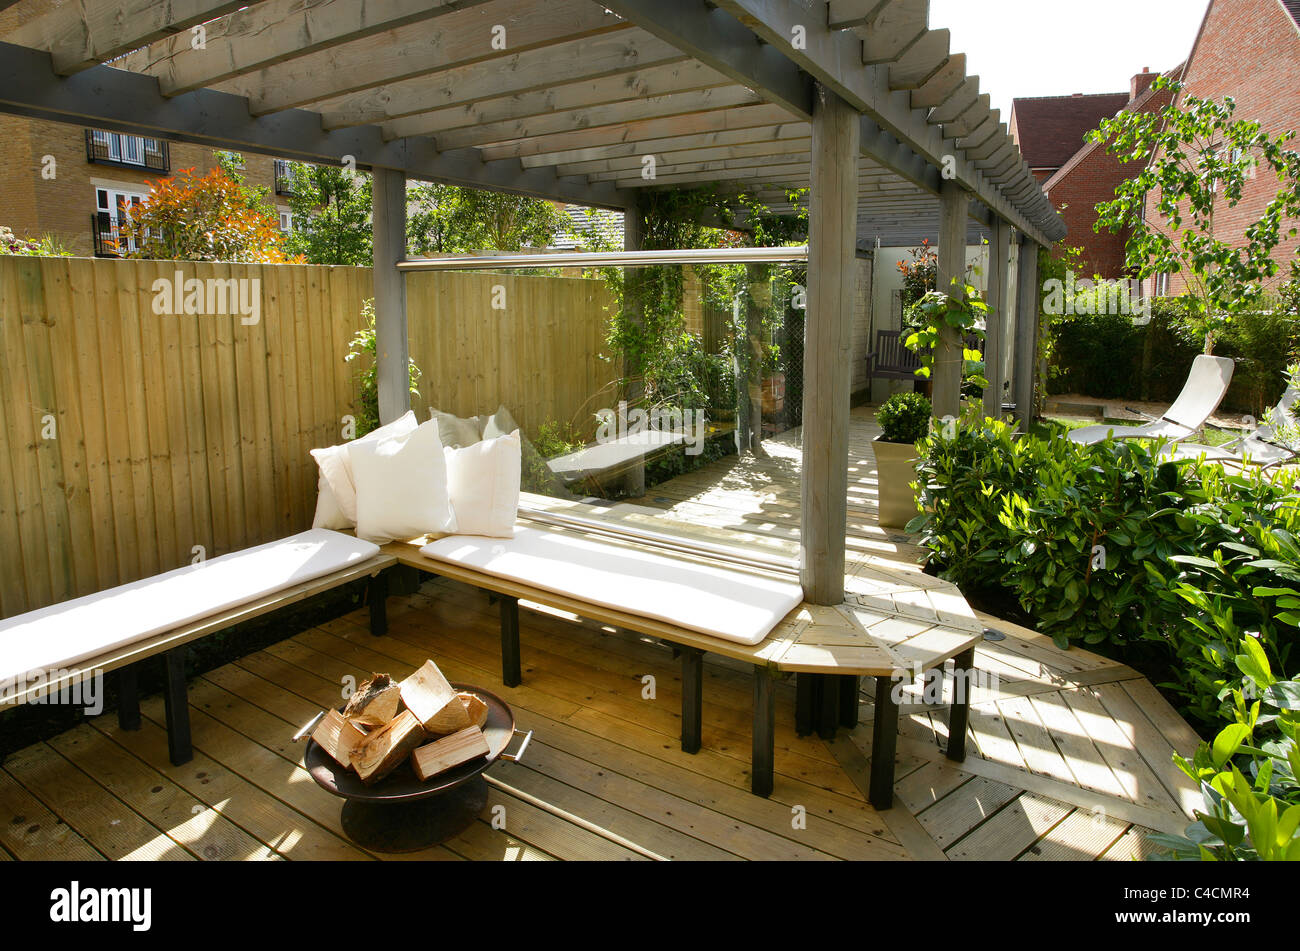 Contemporary Modern English Town Garden With Wooden Bench Decking